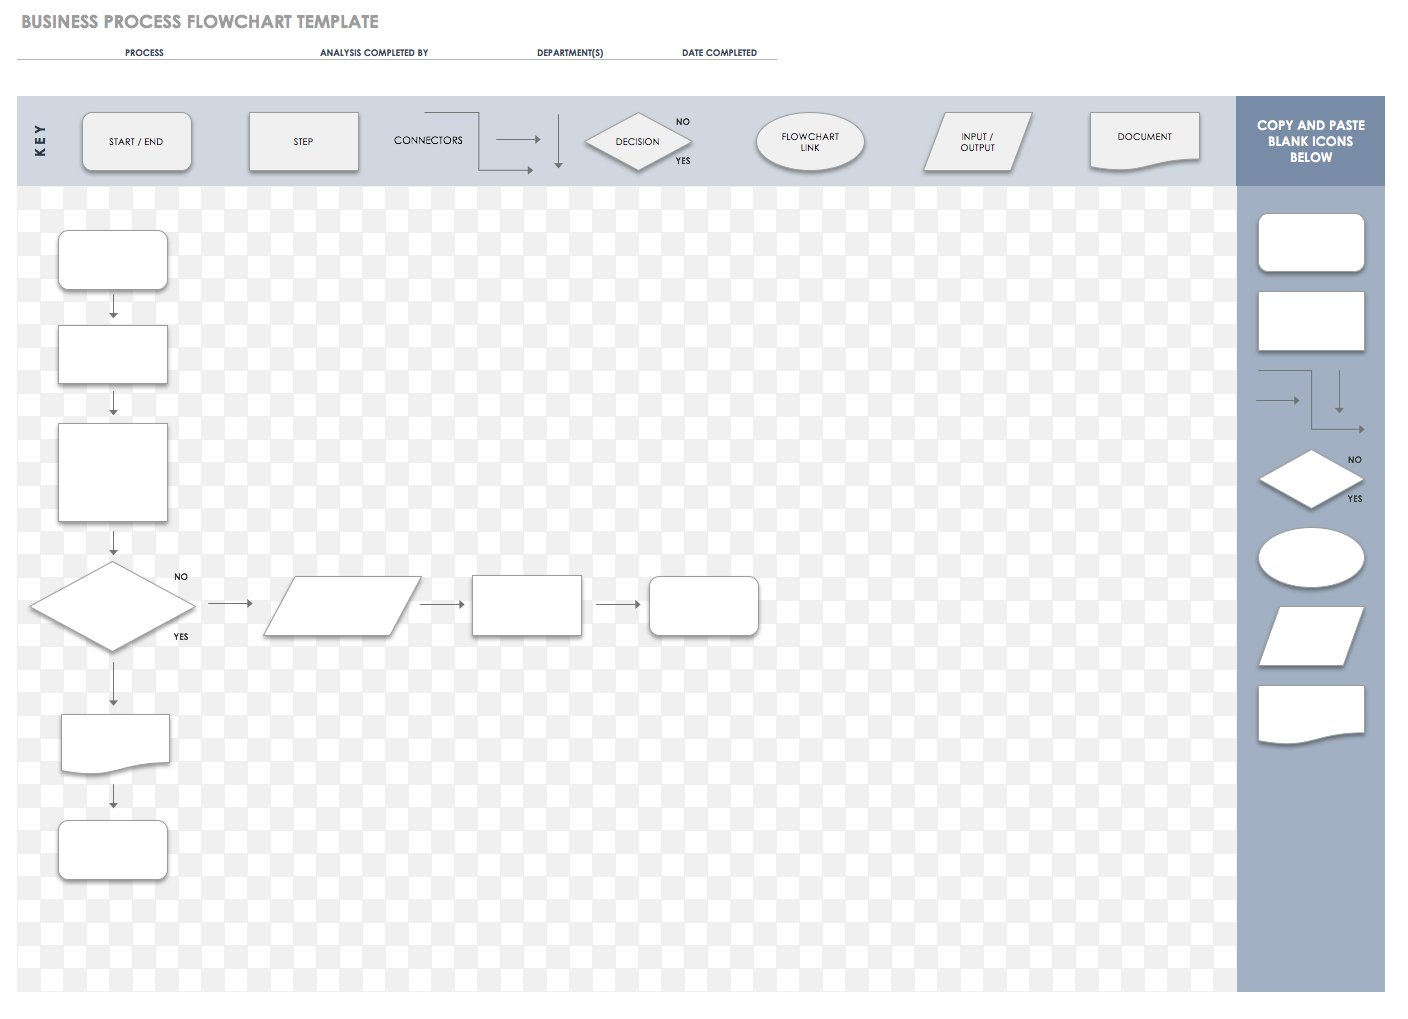 Blank Work Flow Chart Template Excel Within Work Flow Chart Template Excel Sheet